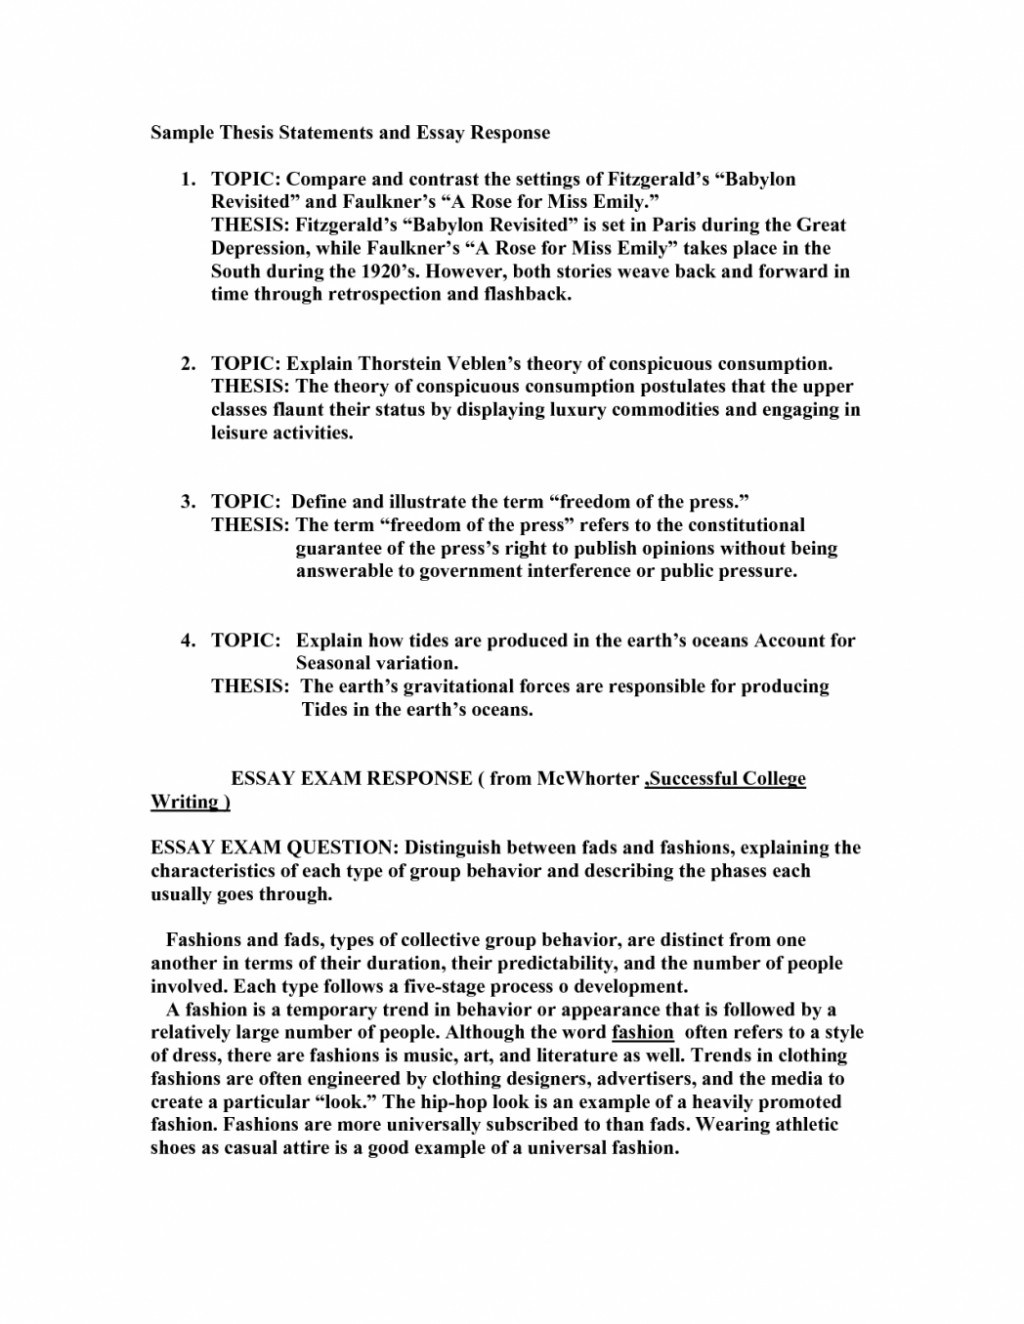 015 What Is Thesis Statement In An Essay Example Of How To Write For About Yourself 6na1p Argumentative Step By Expository High School Ppt Informative Analysis Pdf Fascinating A Examples Narrative Large